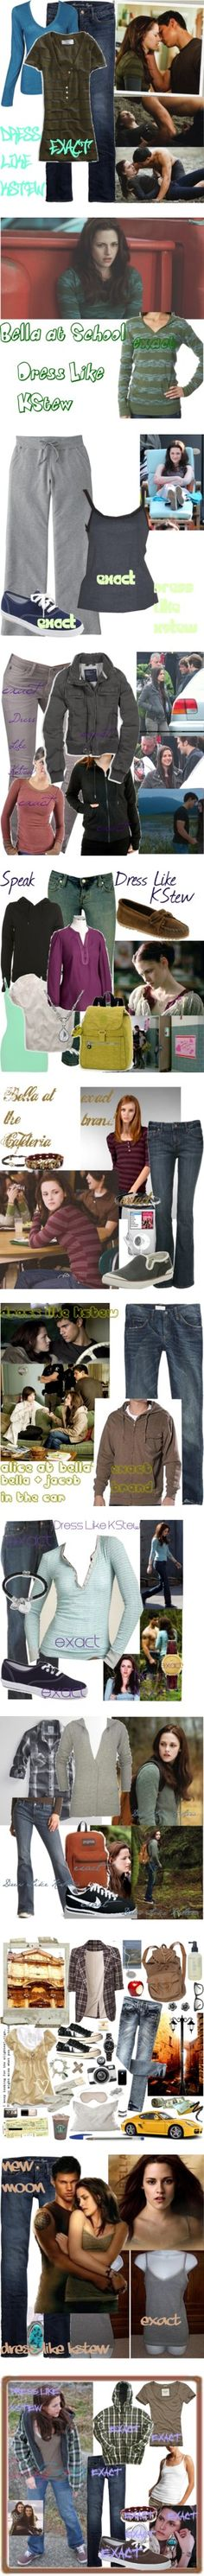 """Bella Swan Outfits"" by massiekur4u ❤ liked on Polyvore"